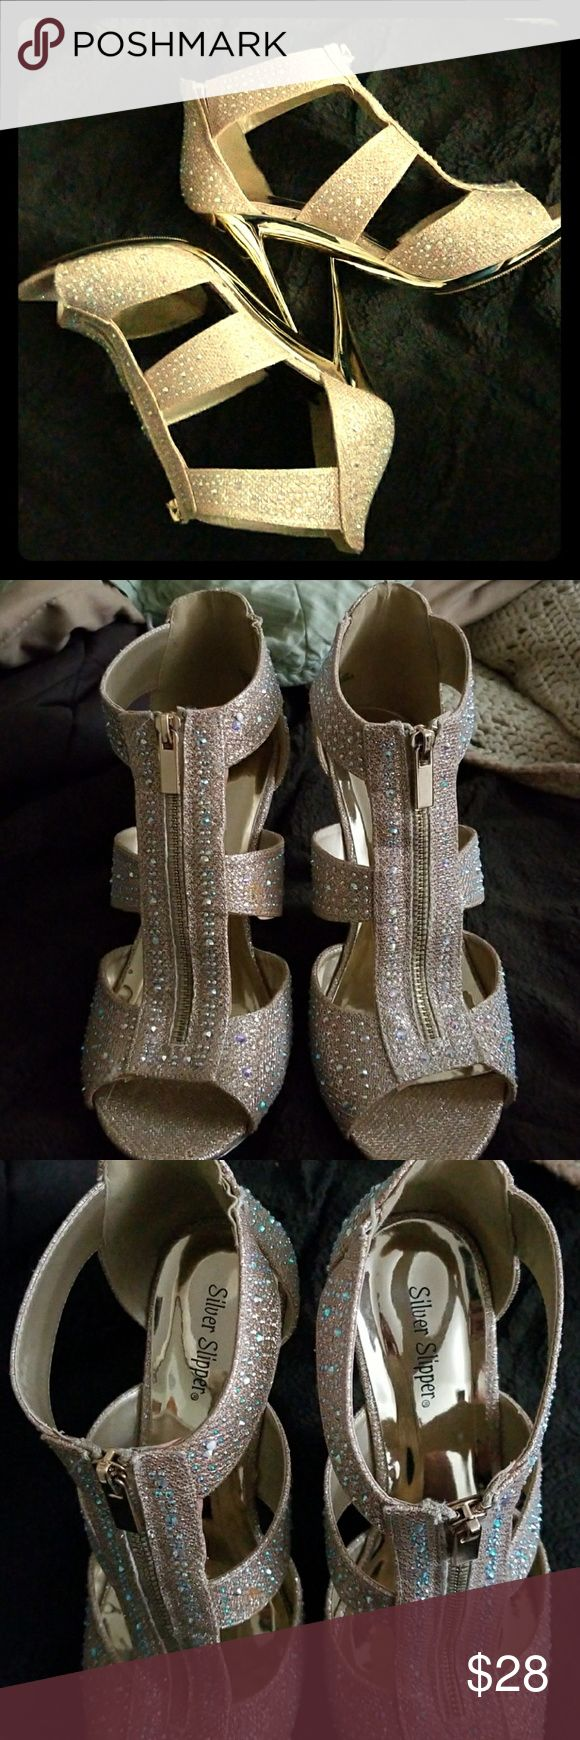 9.5W women's sparkly gold zip up heels Excellent condition Silver Slipper brand gold heels in a size 9.5W. Only worn a couple times for a night out Silver Slipper Shoes Heels